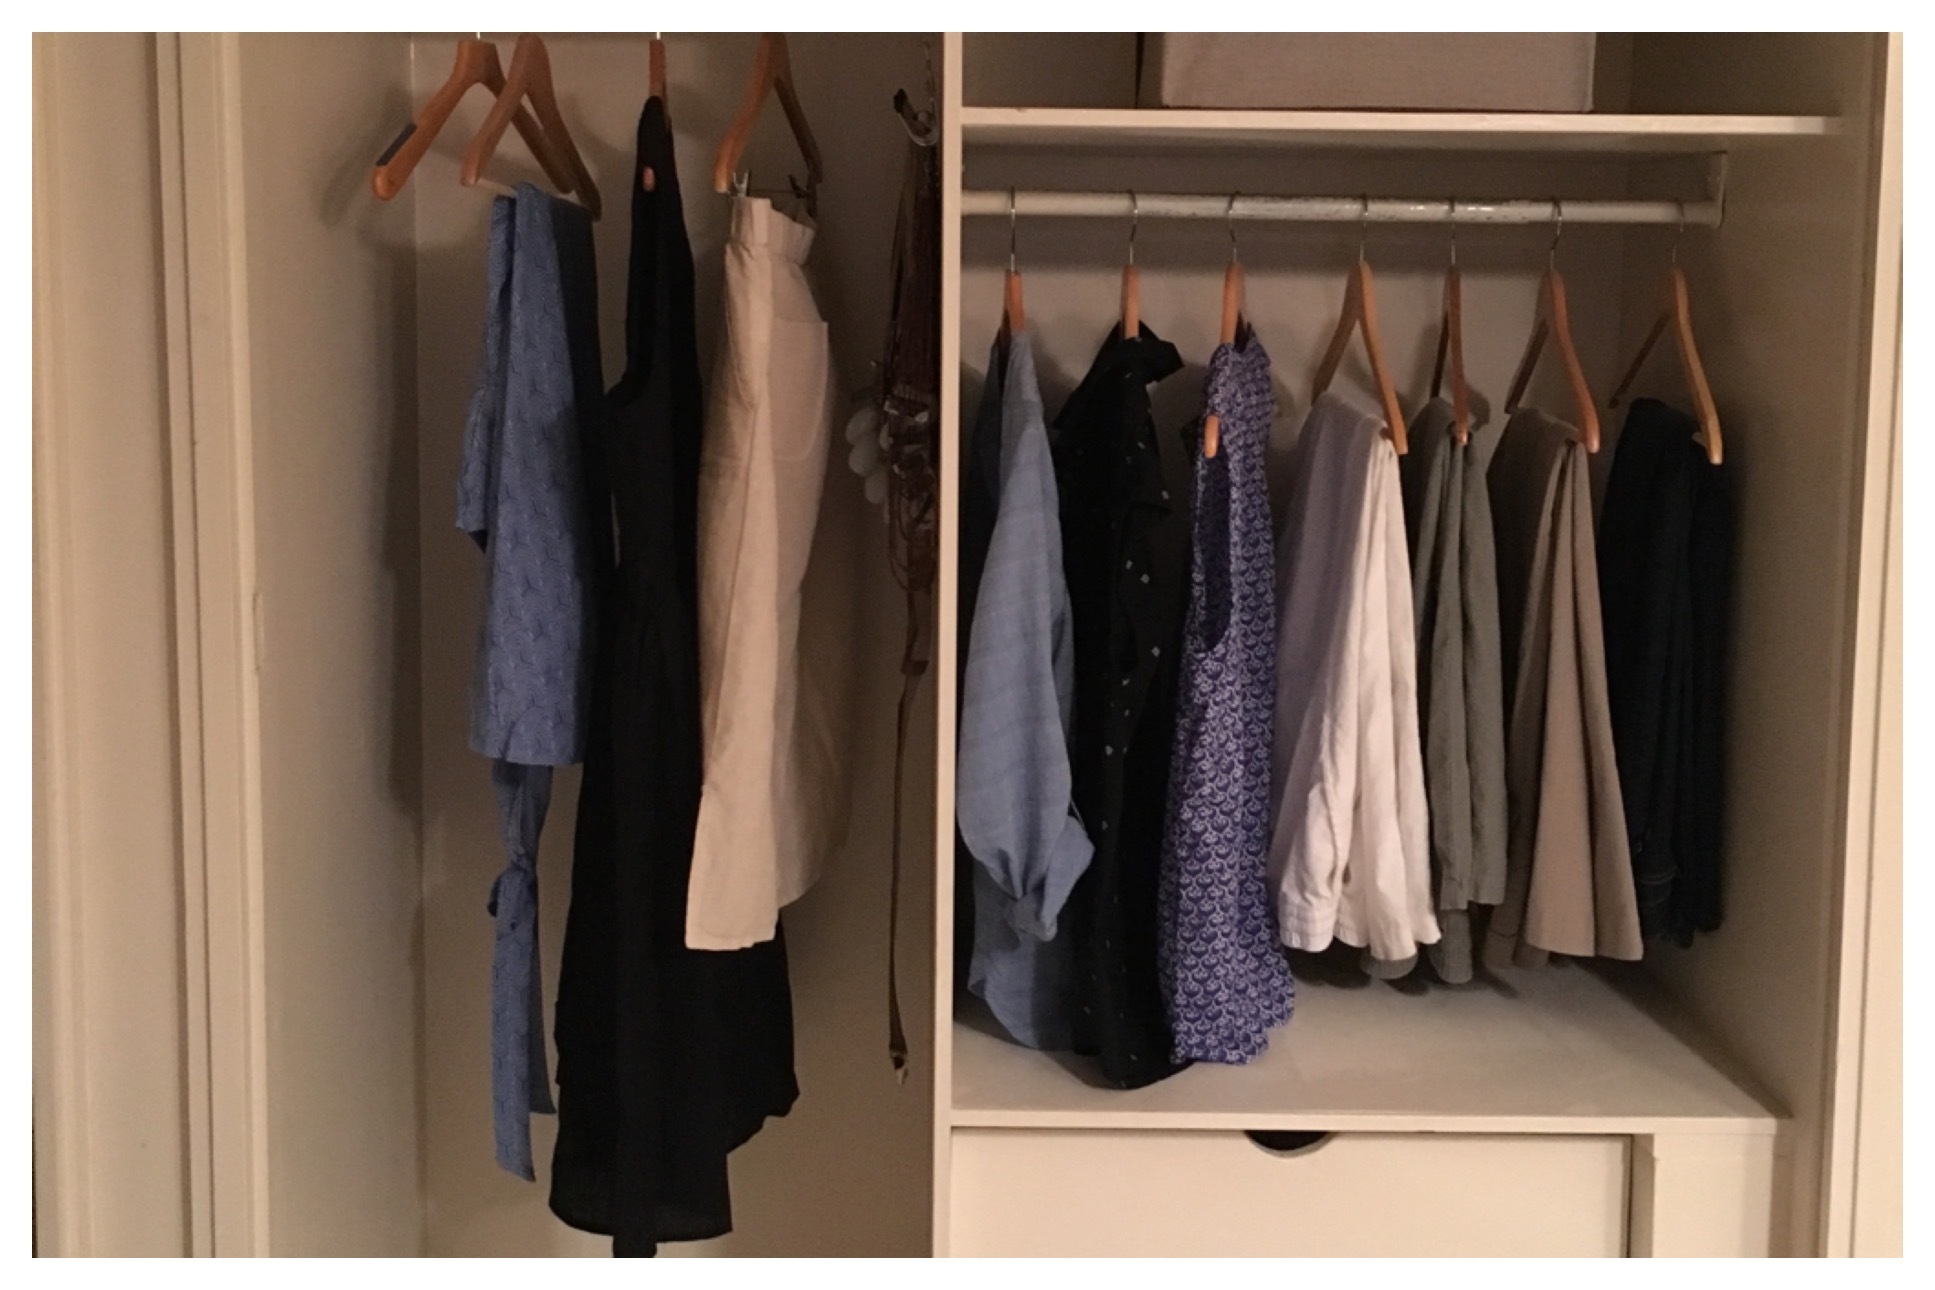 My new ten item capsule wardrobe for July - December, 2016